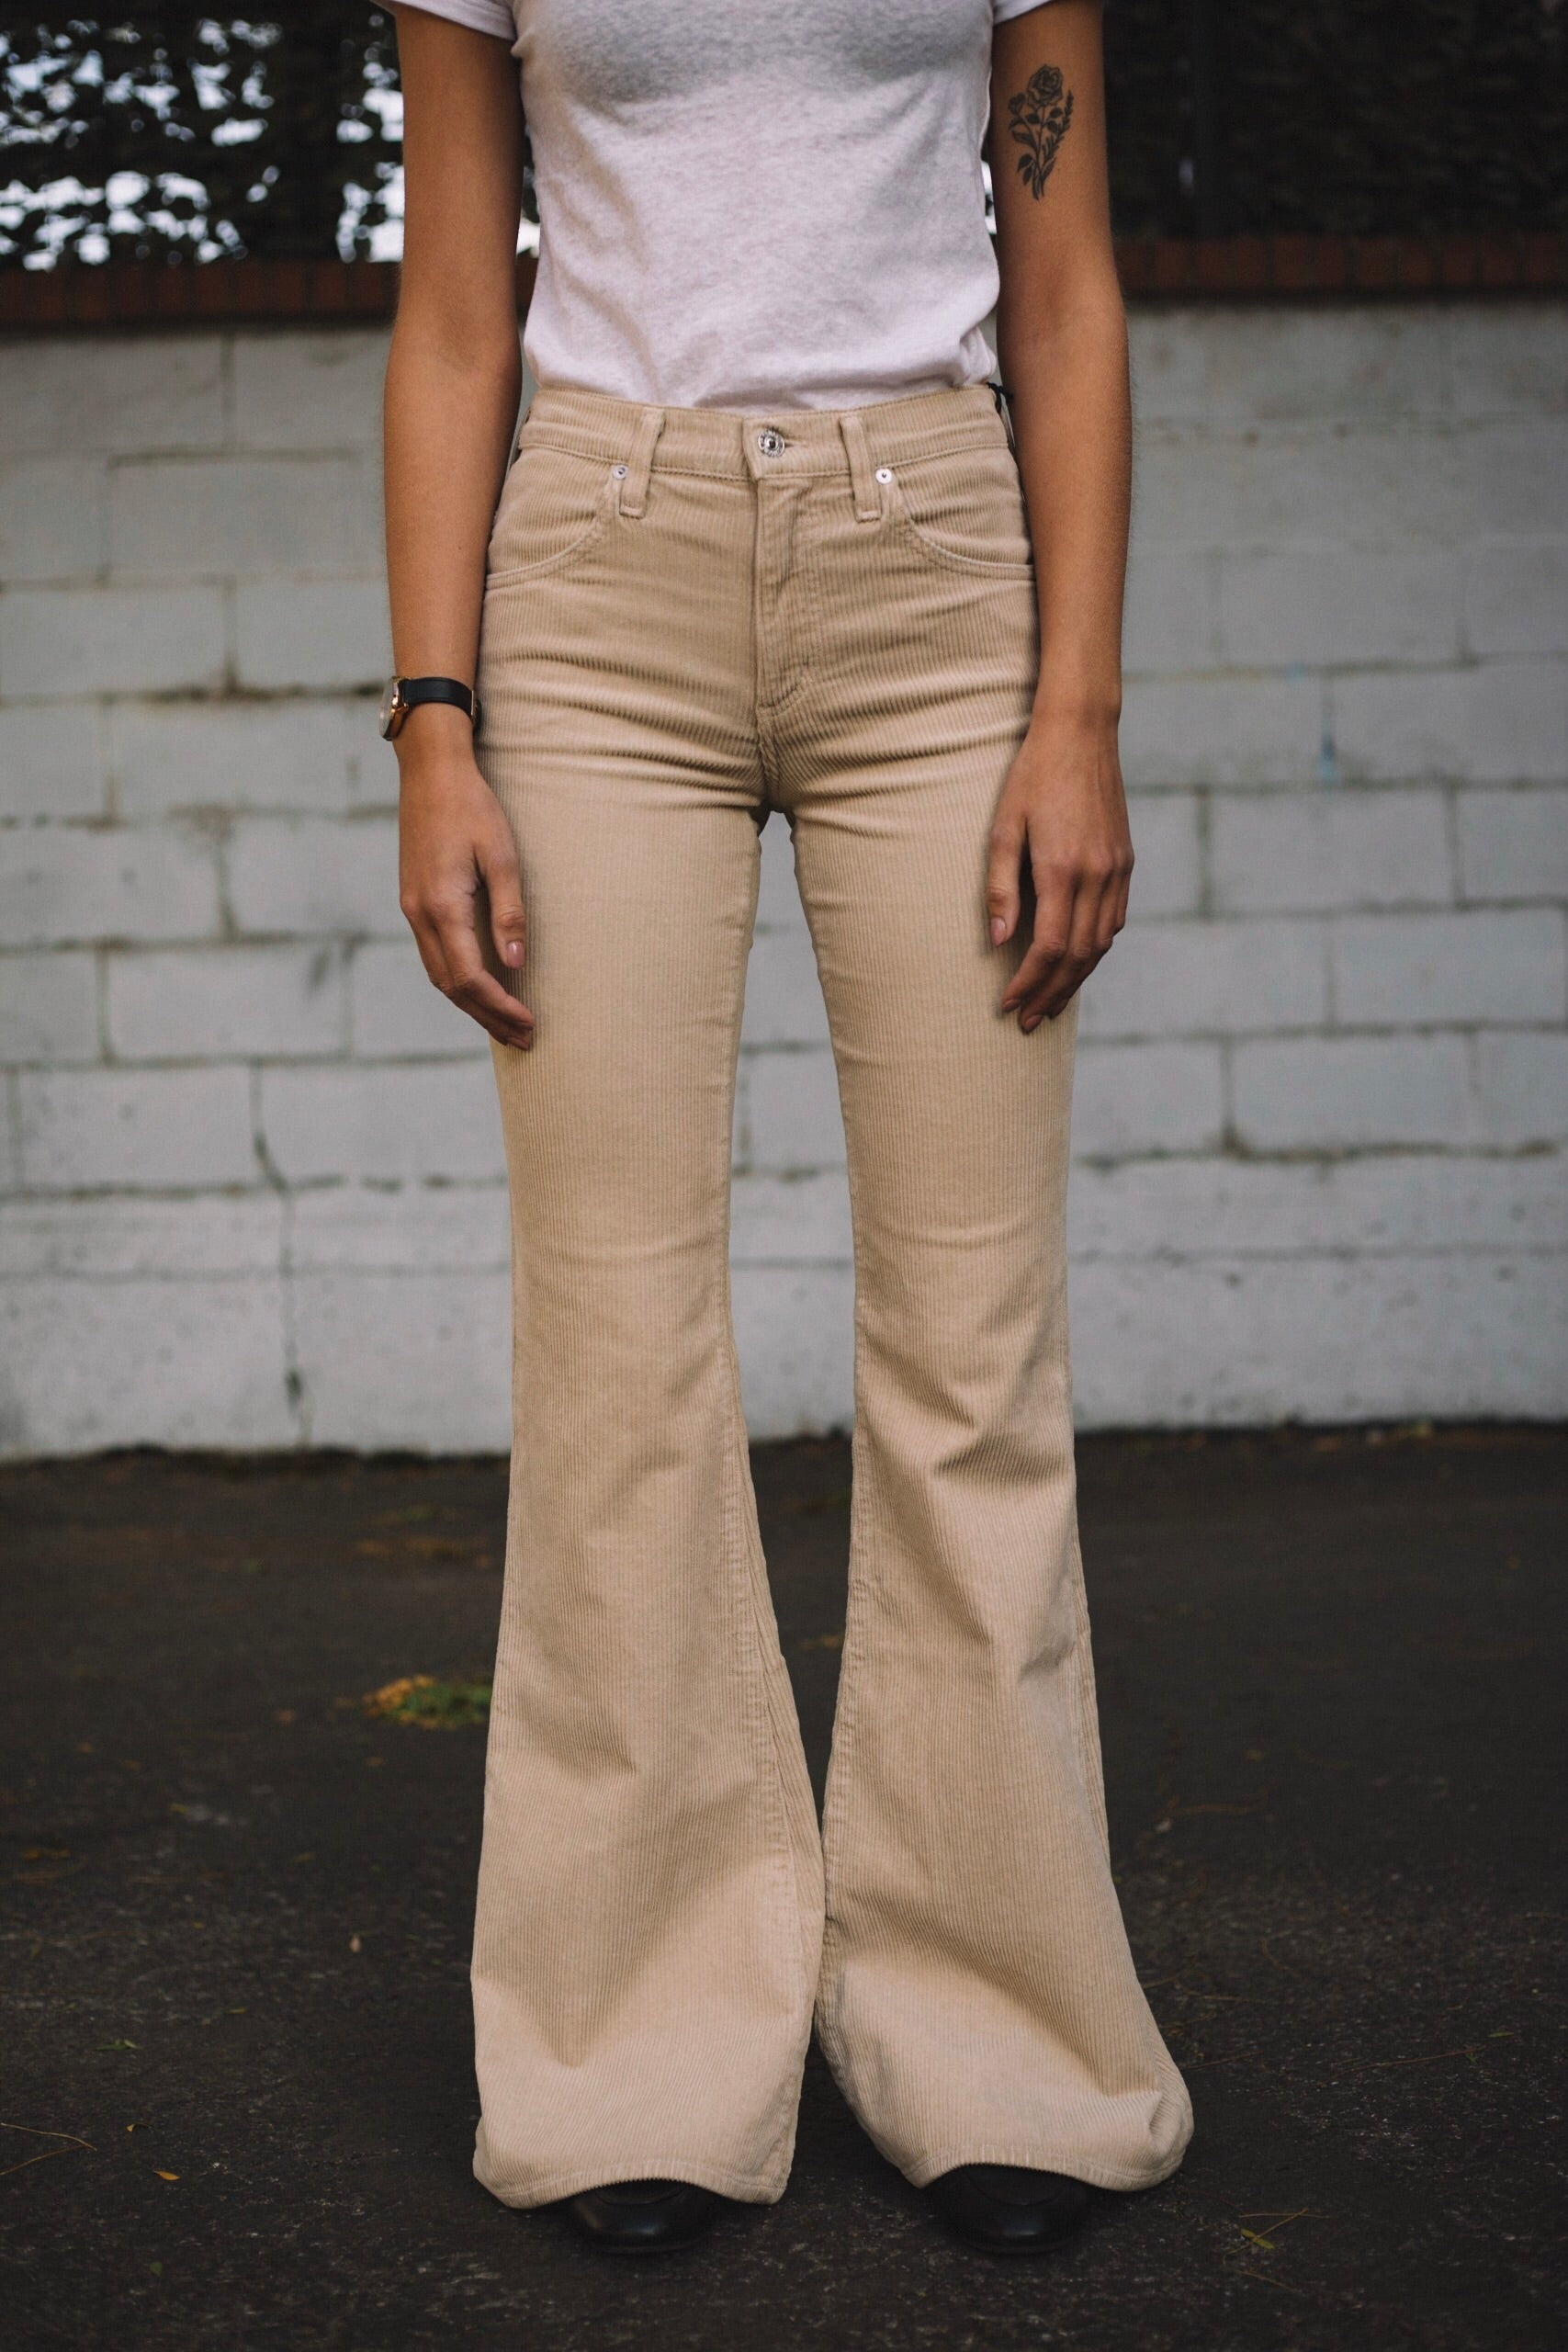 dd57472d911 Citizens of Humanity Chloe Super Flare in Camel Corduroy - ARTISAN DELUXE